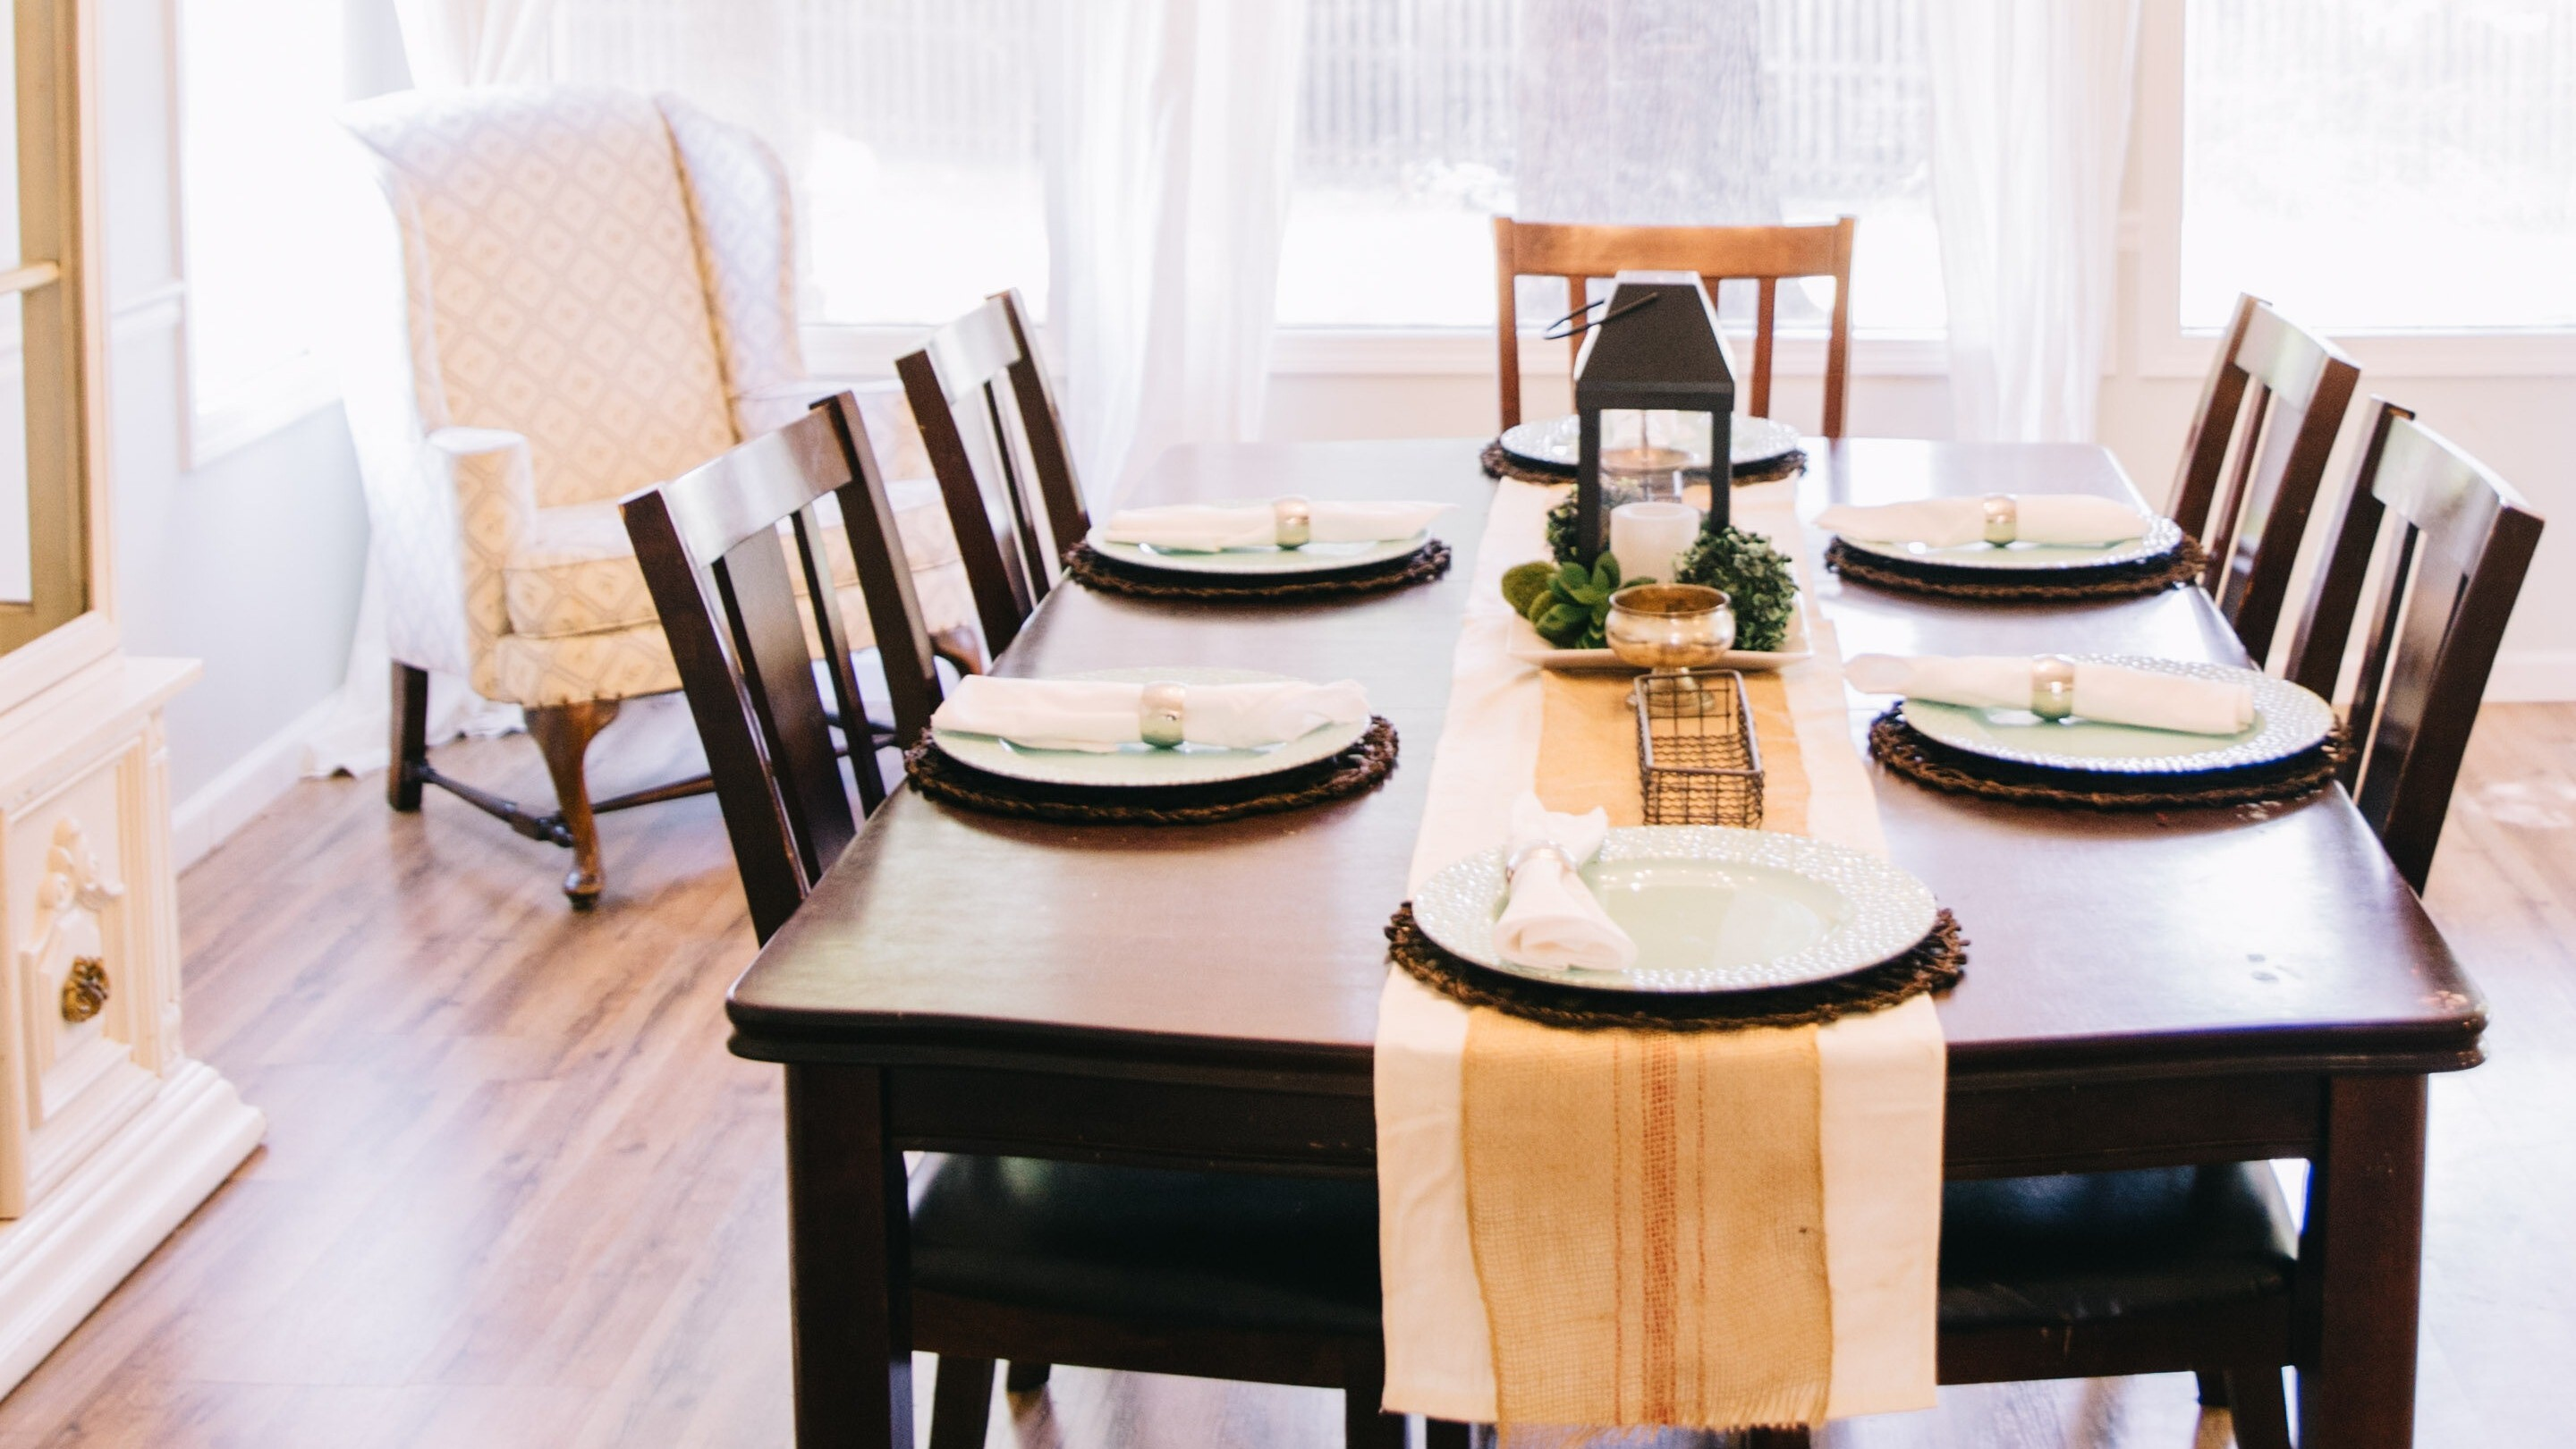 Wooden Dining Table Interior Design Hd Wallpaper Hd Wallpapers